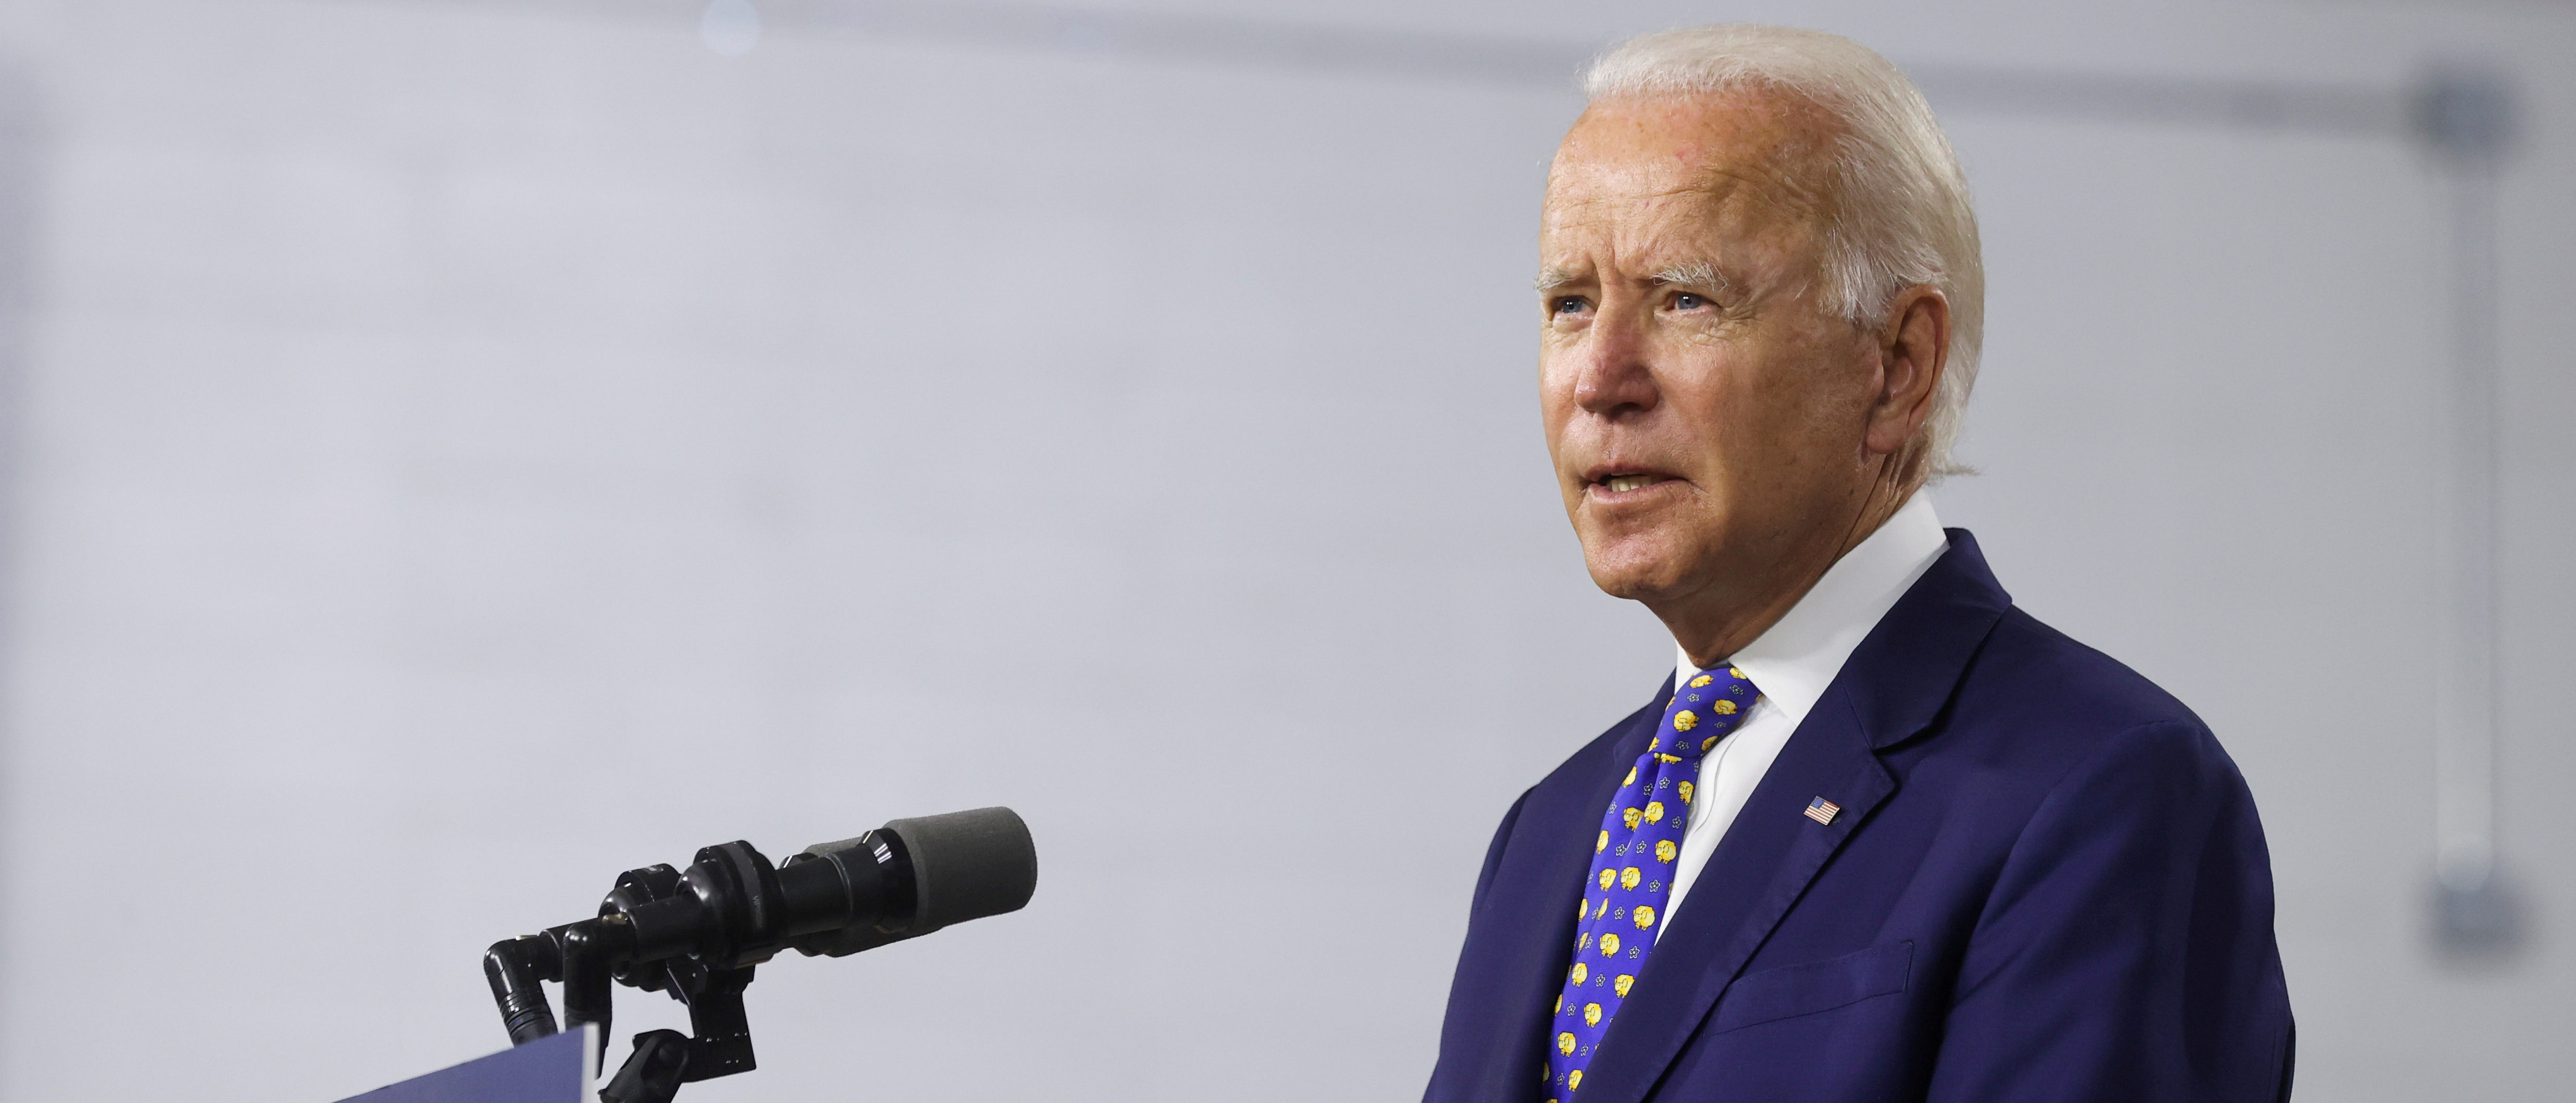 Democratic presidential candidate and former Vice President Joe Biden speaks about his plans to combat racial inequality at a campaign event in Wilmington, Delaware, U.S., July 28, 2020. REUTERS/Jonathan Ernst/File Photo